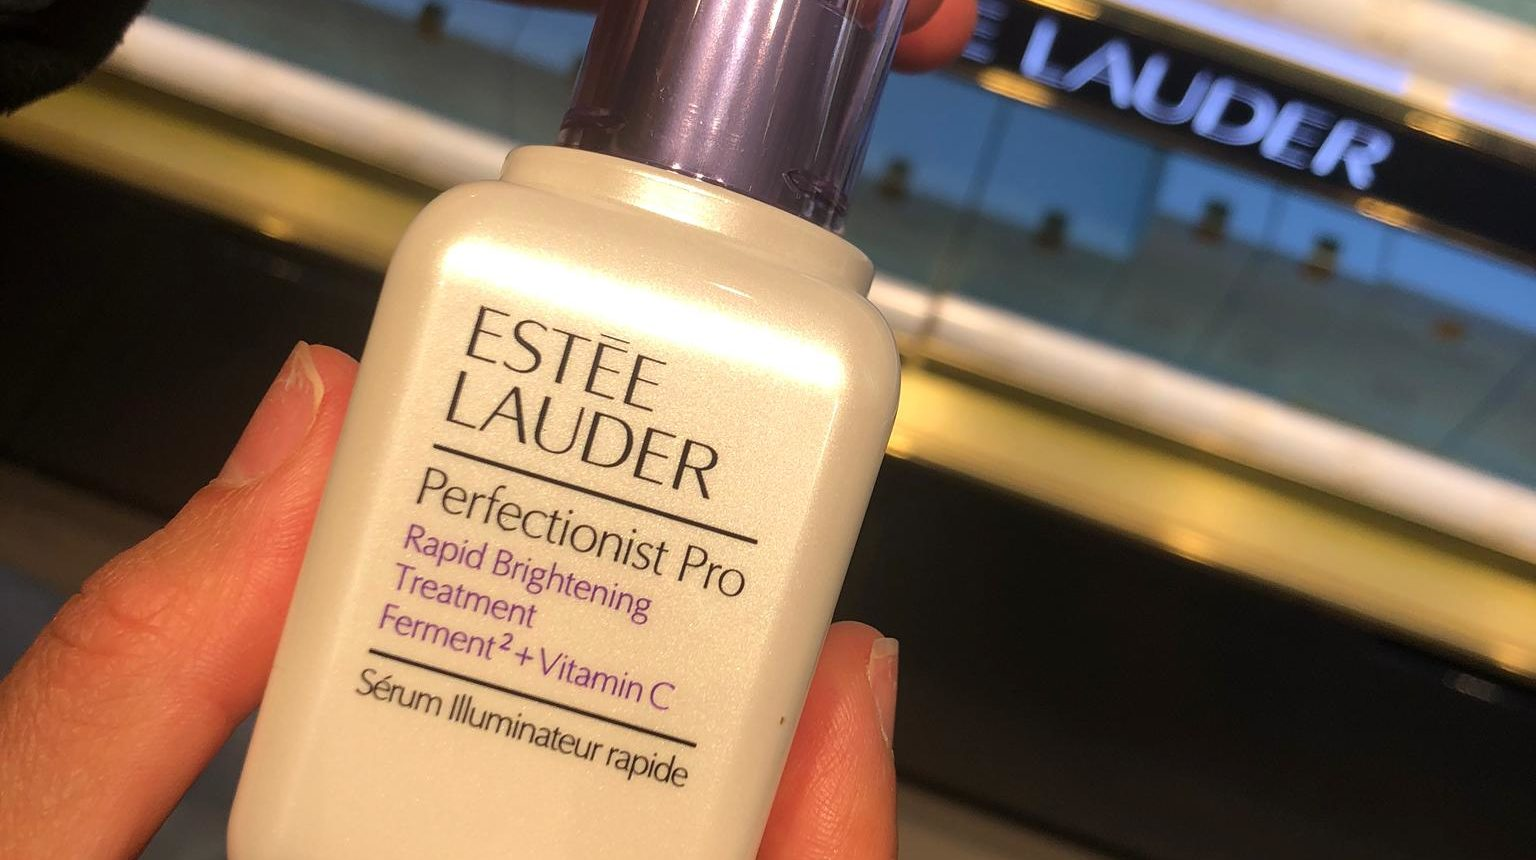 Perfectionist Pro Rapid Firm + Lift Treatment - Estée Lauder